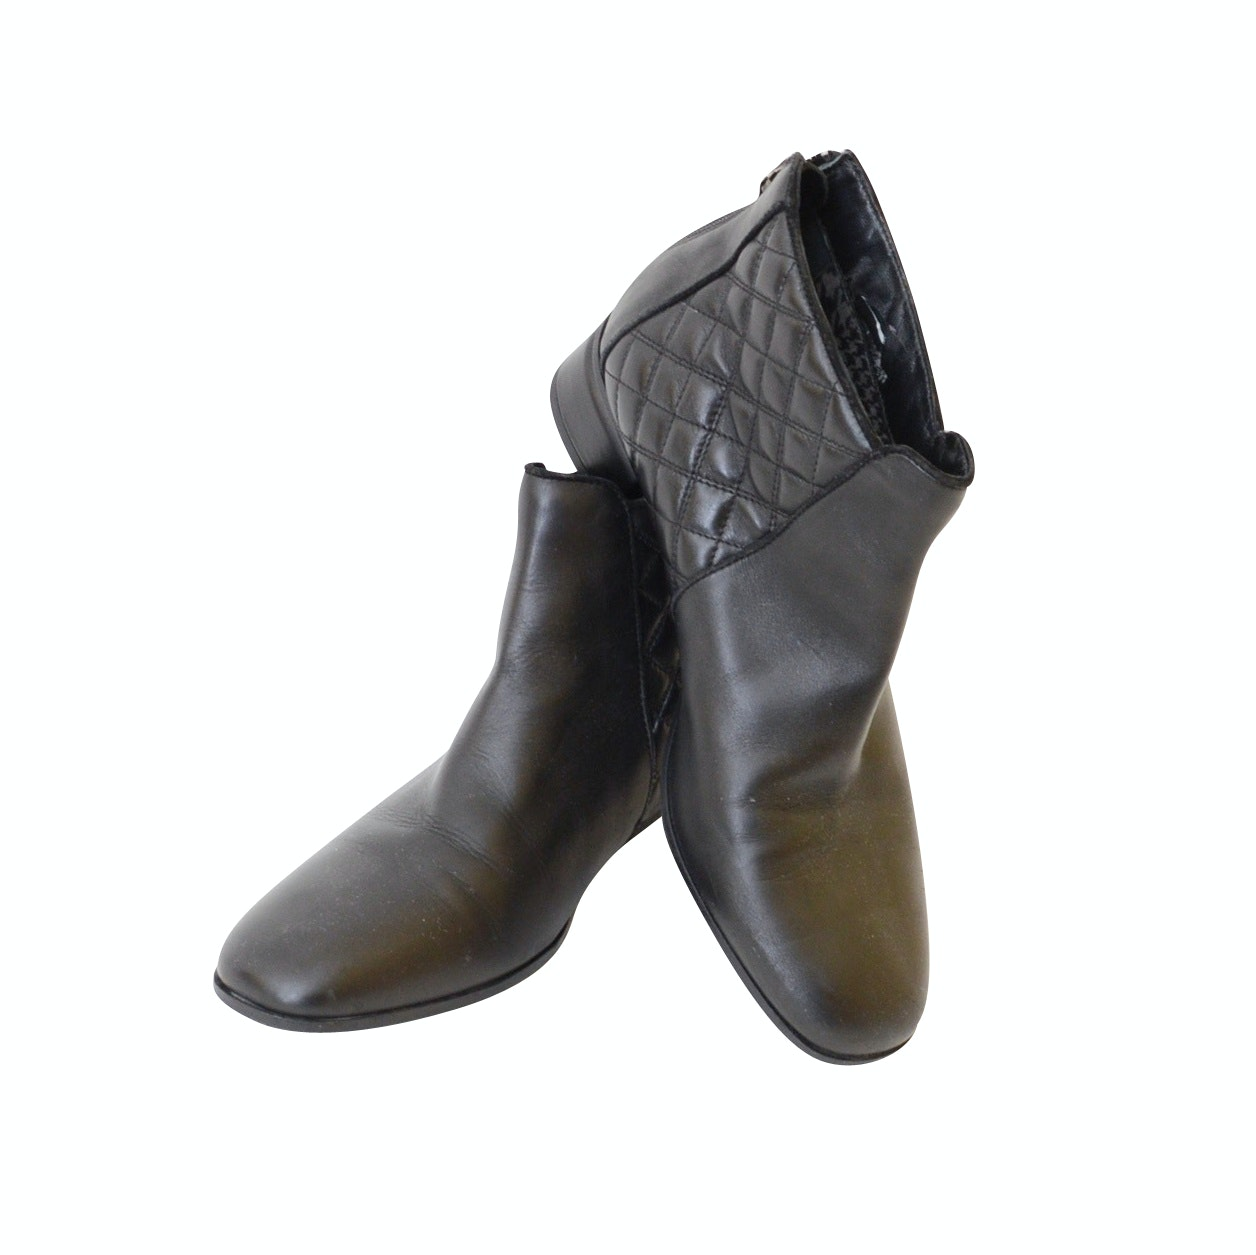 Pair of Women's Aquatalia Ankle Boots, Made in Italy